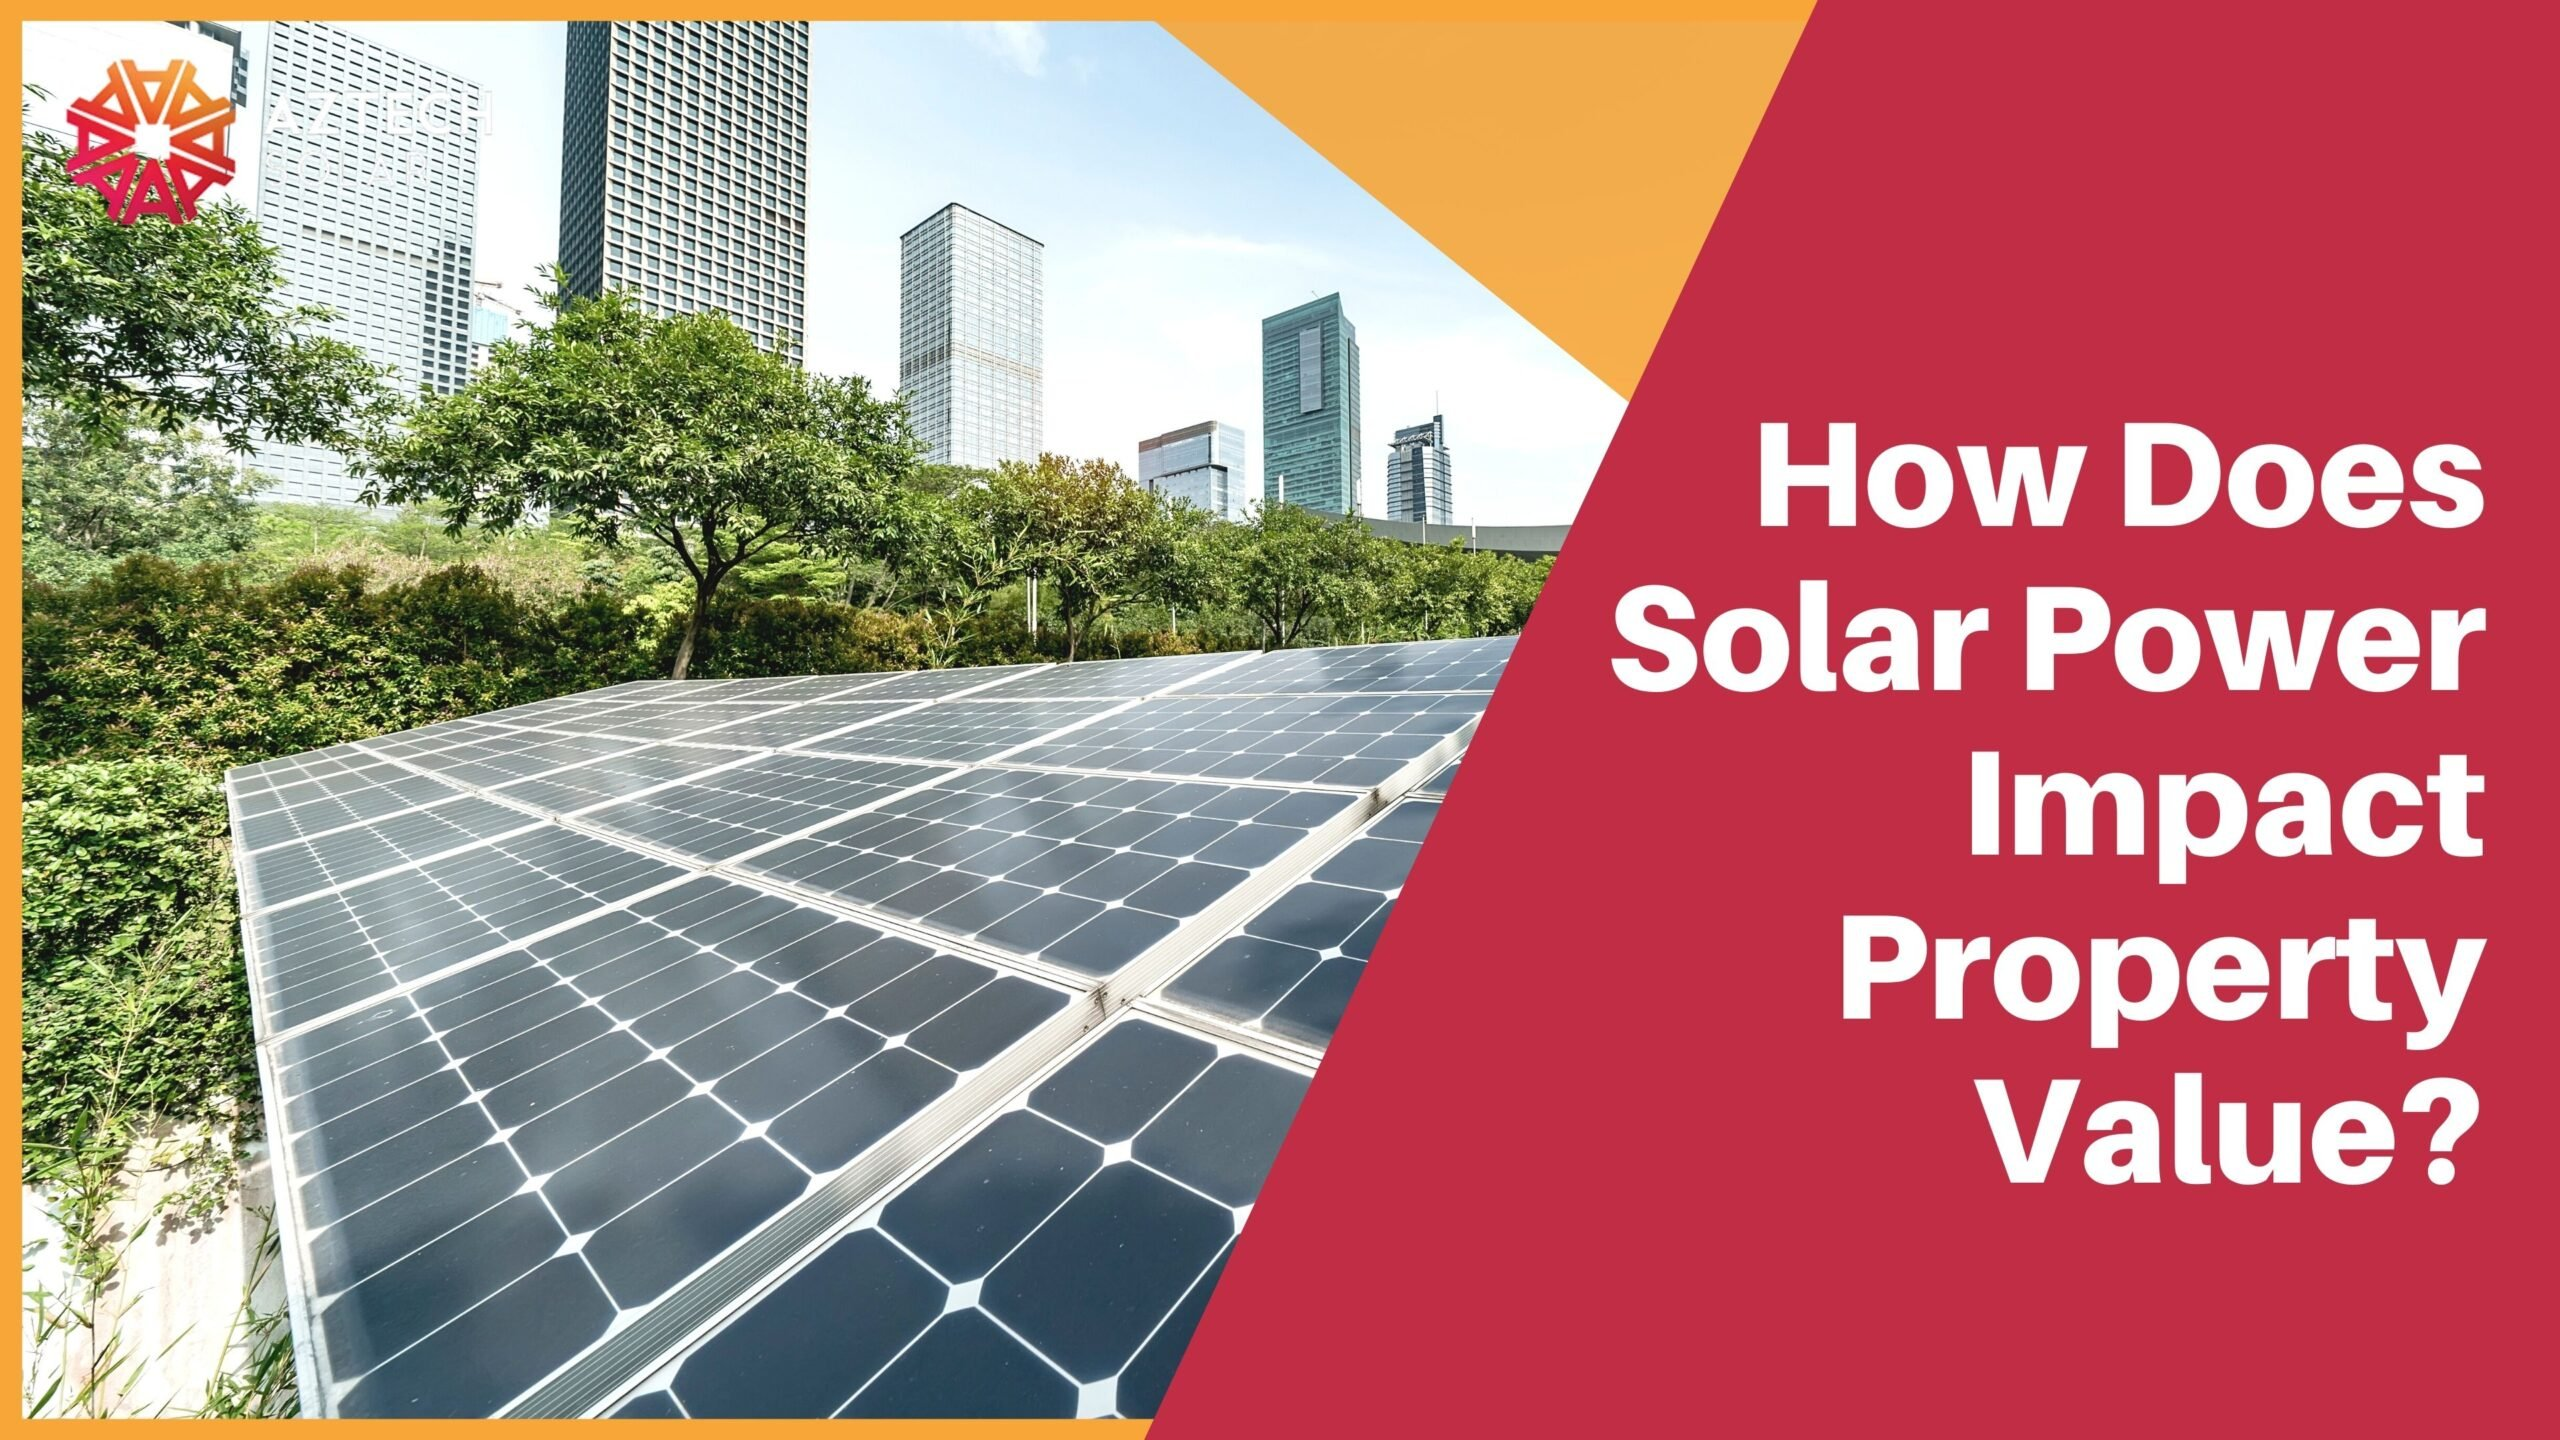 How Does Solar Power Impact Property Value